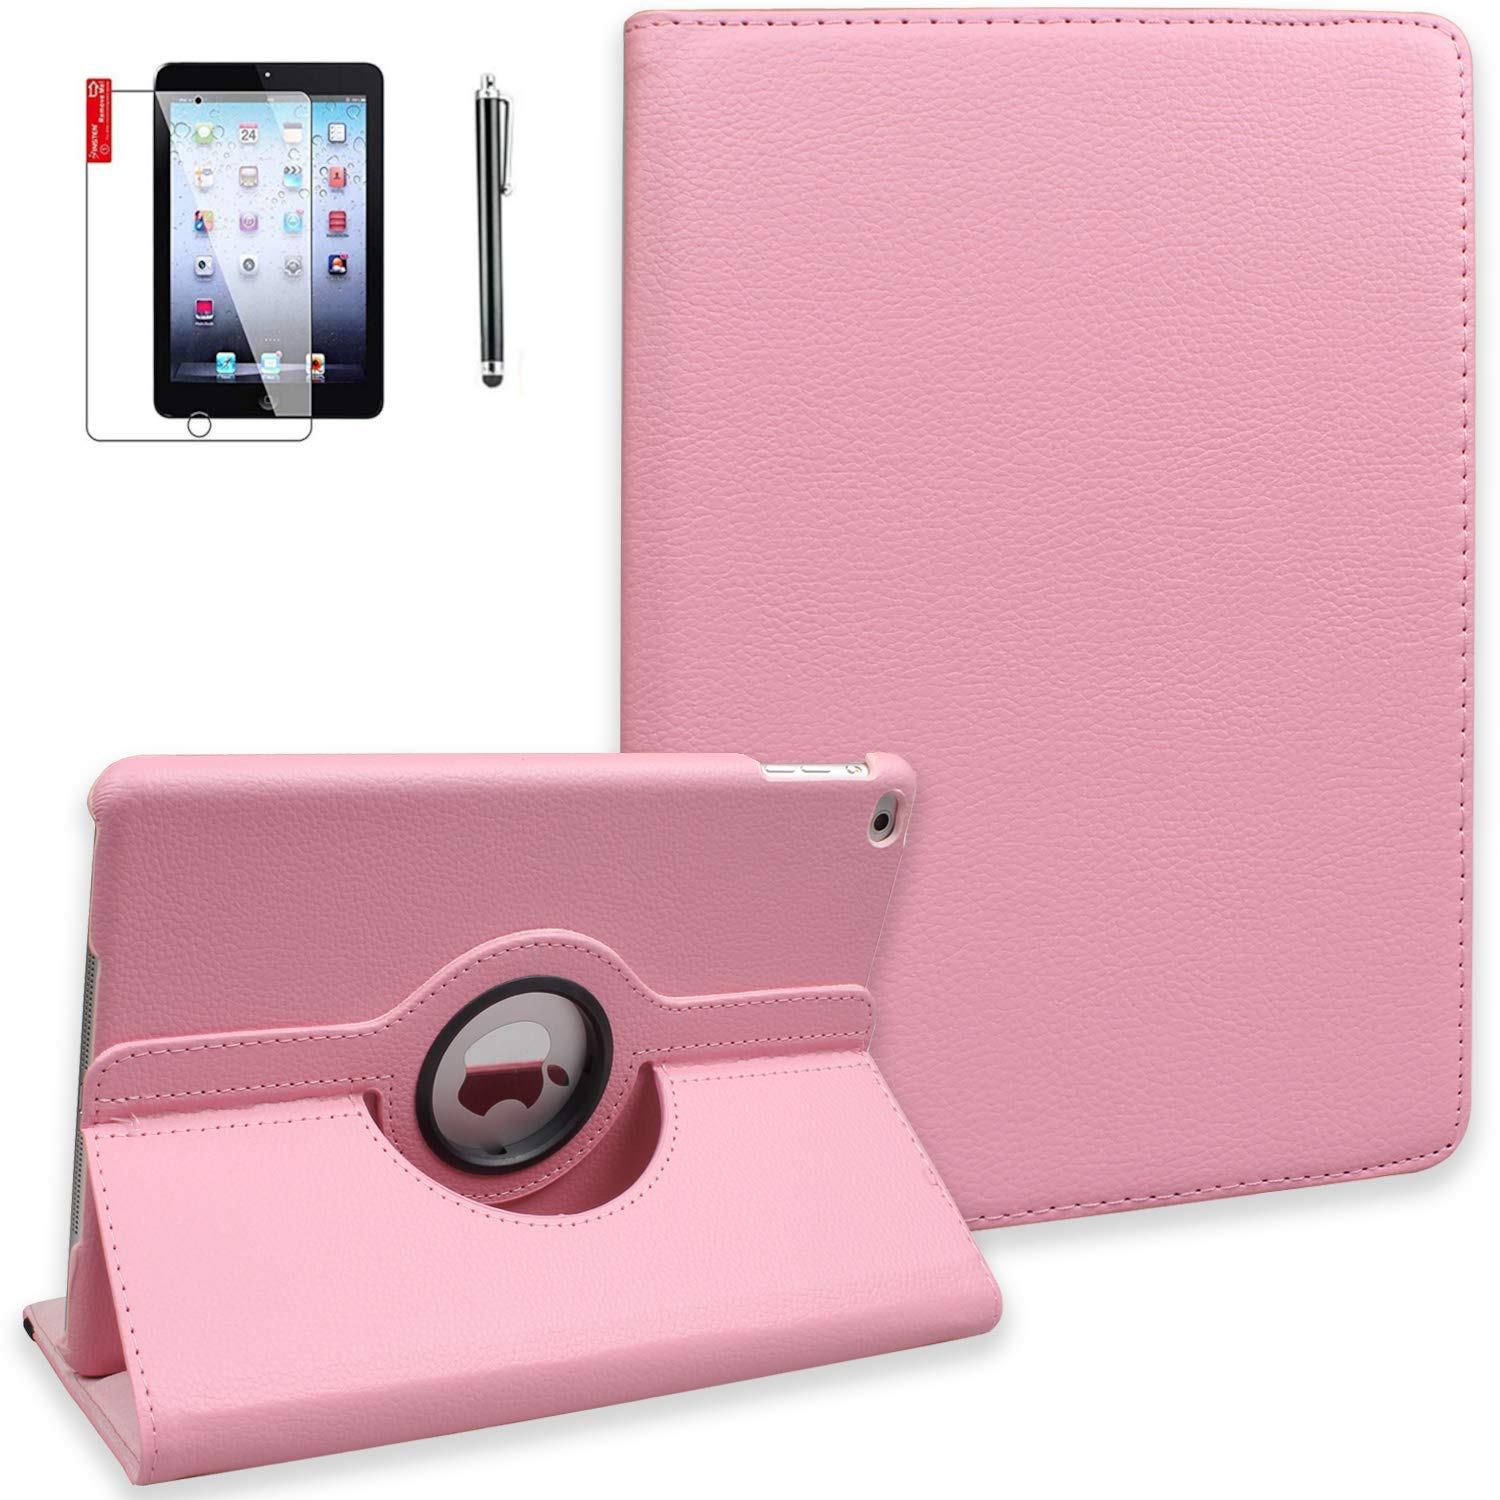 NEWQIANG iPad Case for Model A1458 with Screen Protector and Stylus - 2nd 3rd 4th Generation Case - Shockproof, 360 Degree Rotating Stand, Auto Sleep Wake -A1395 A1416 MD510LL/A (Pink)